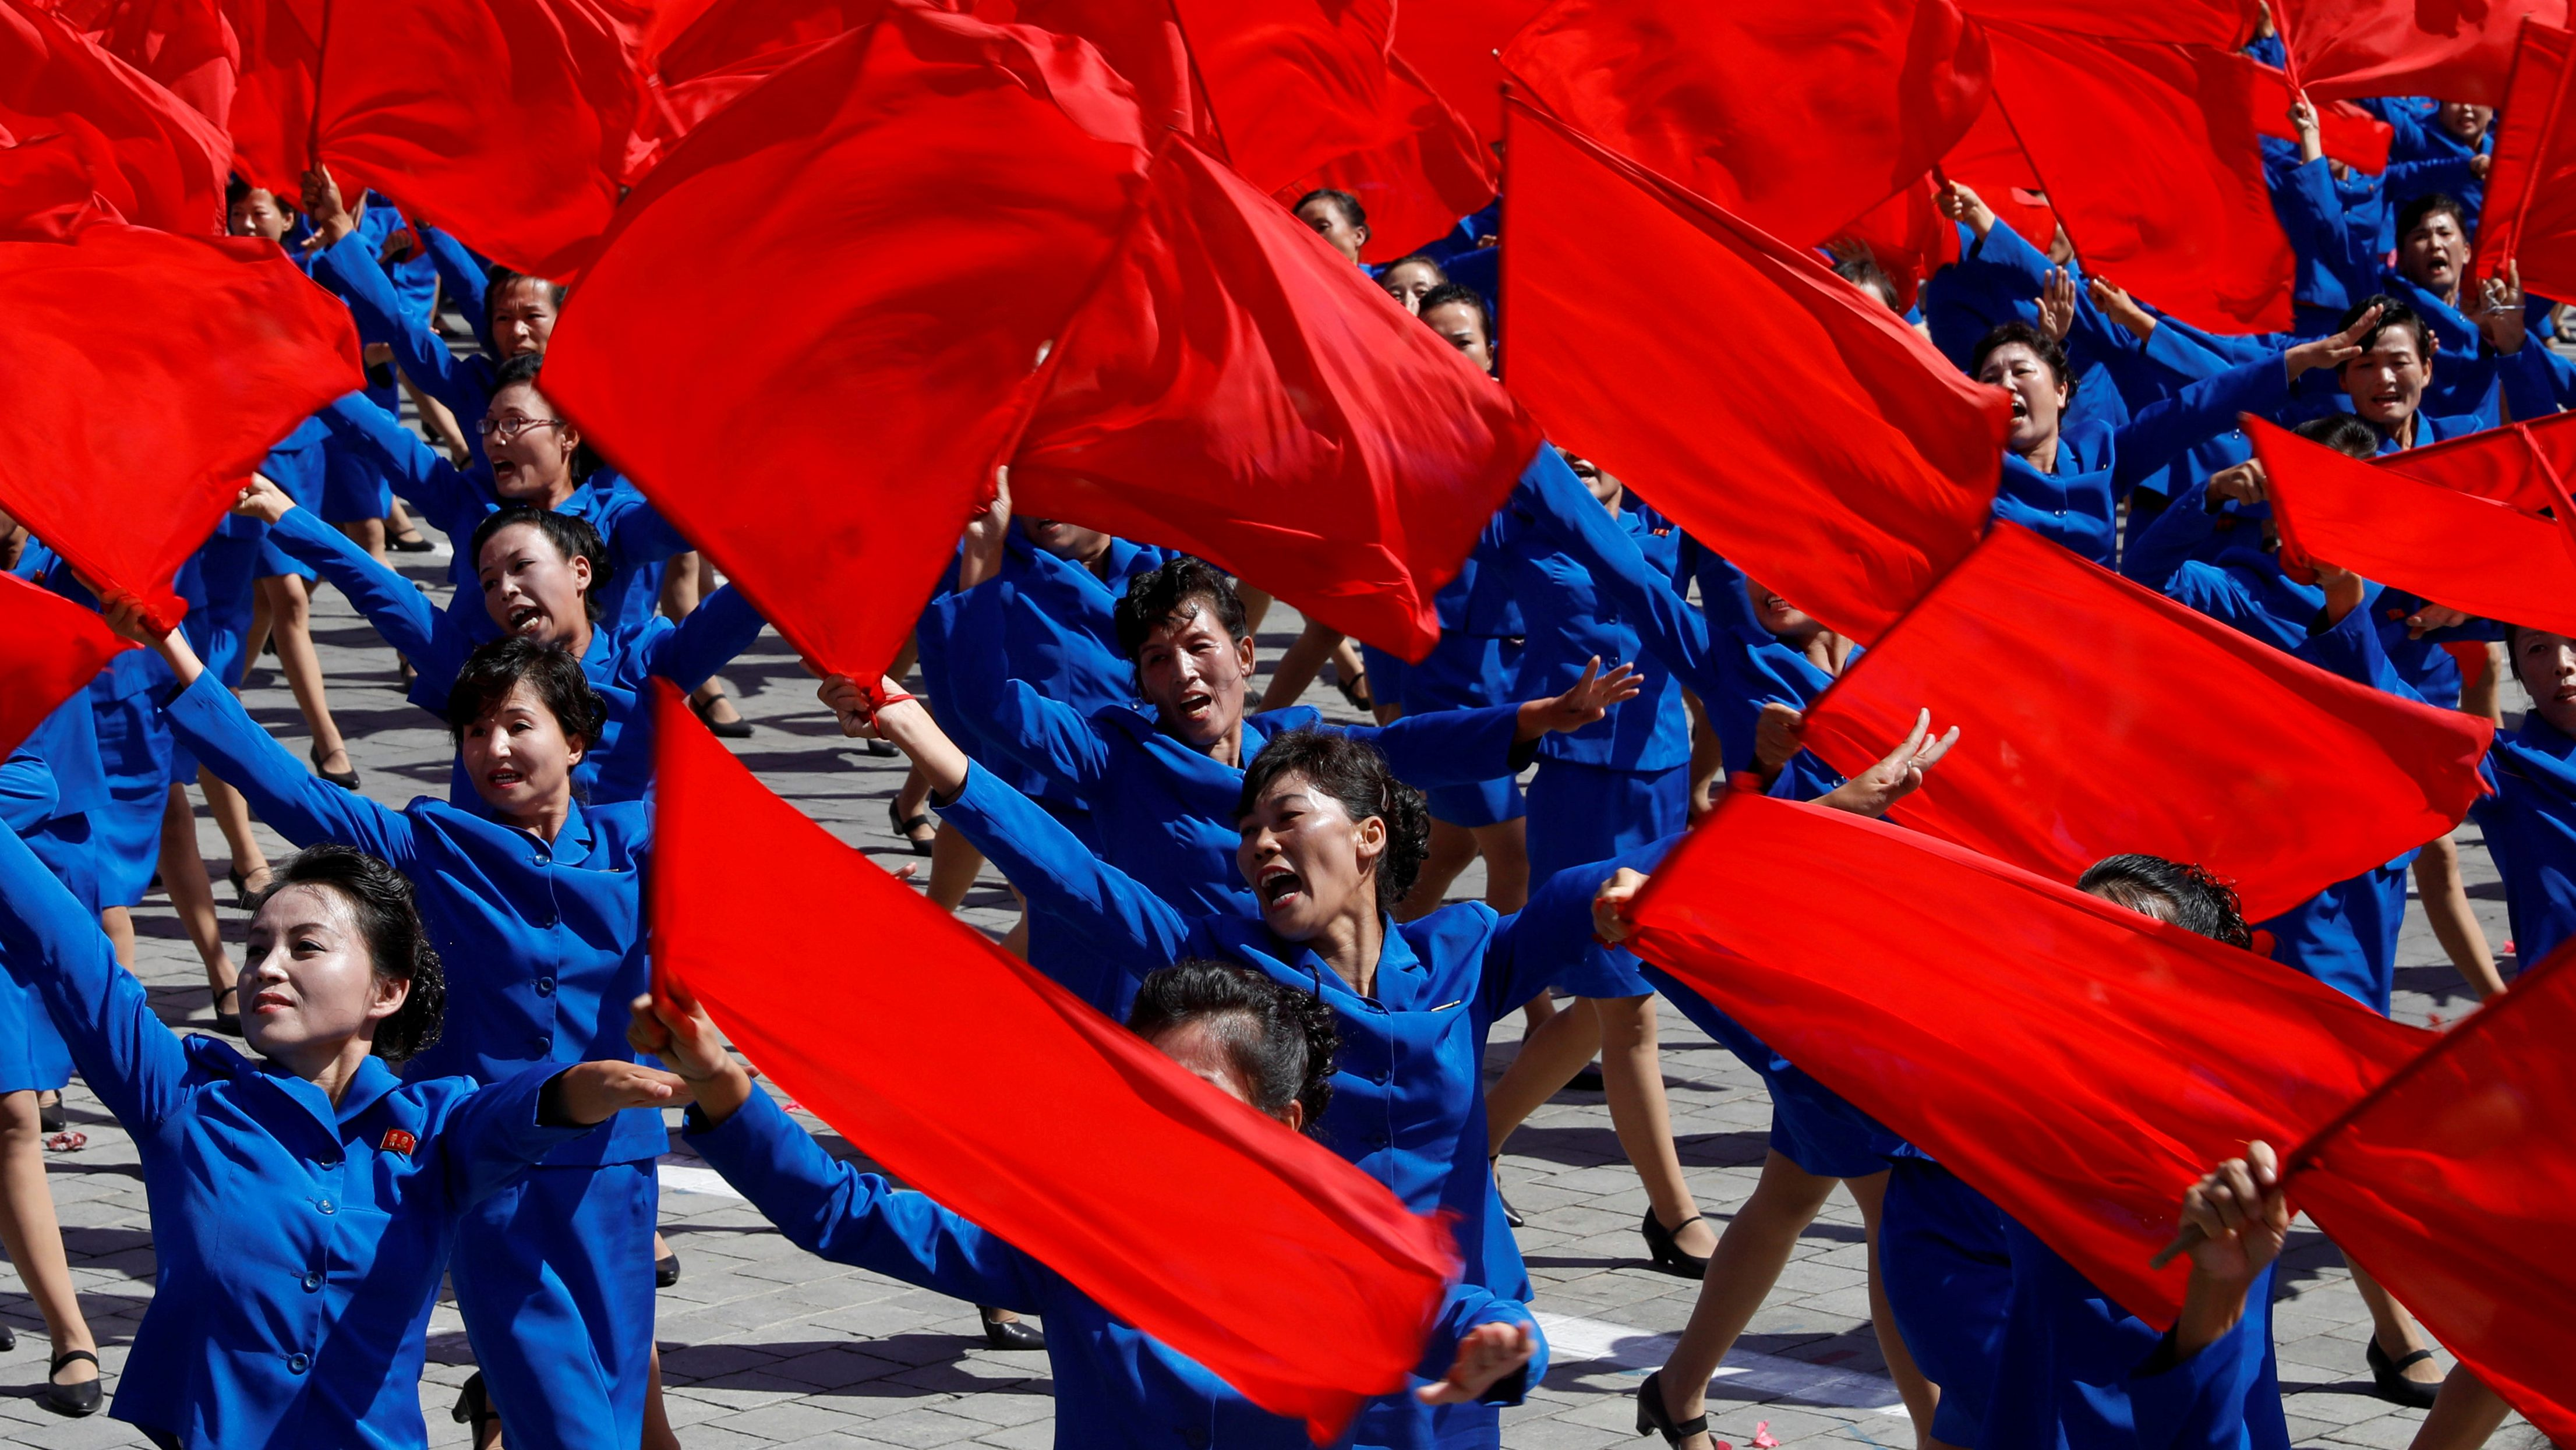 People perform during a military parade marking the 70th anniversary of North Korea's foundation in Pyongyang, North Korea, September 9, 2018. REUTERS/Danish Siddiqui TPX IMAGES OF THE DAY - RC13FDB8A790